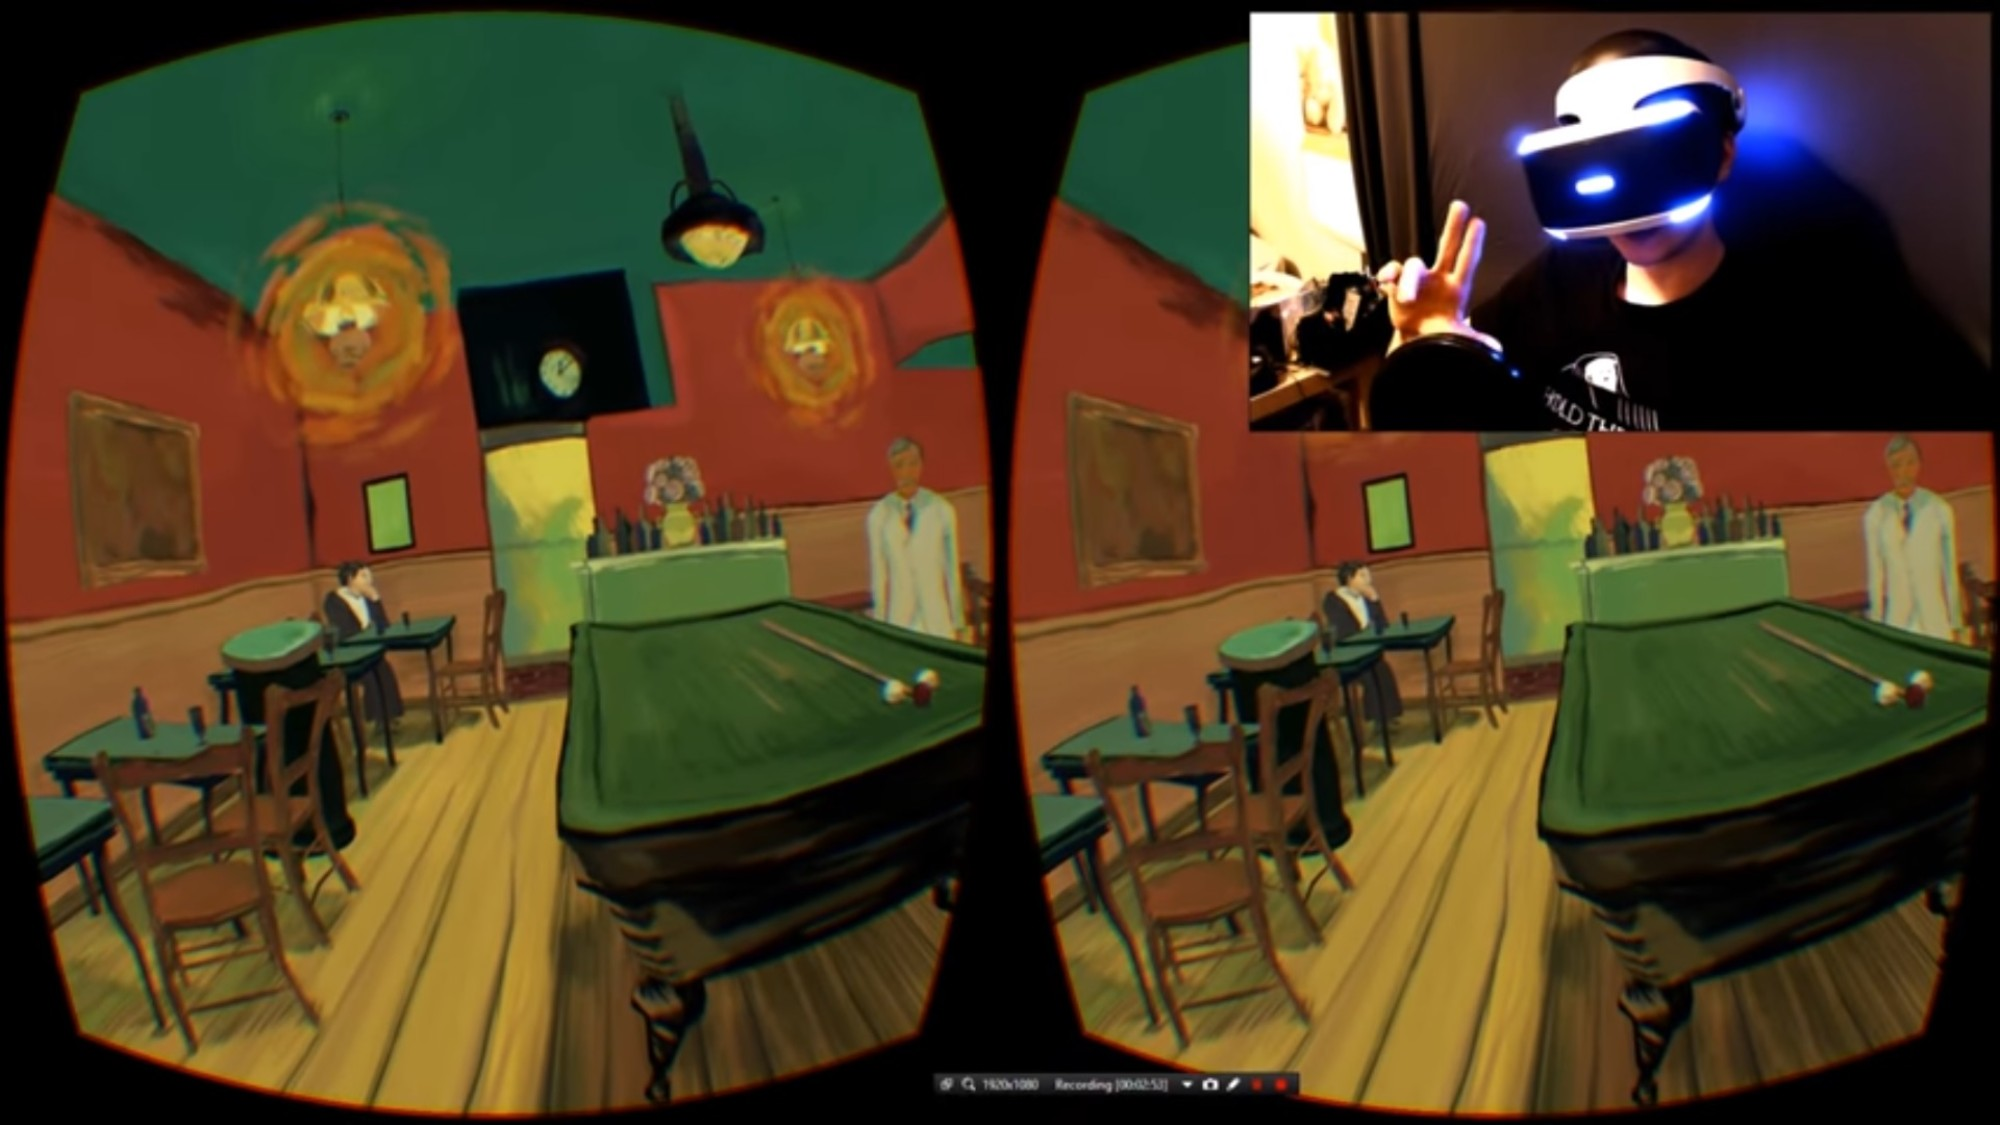 Thanks to Modders, You Can Now Play SteamVR Games with a PSVR